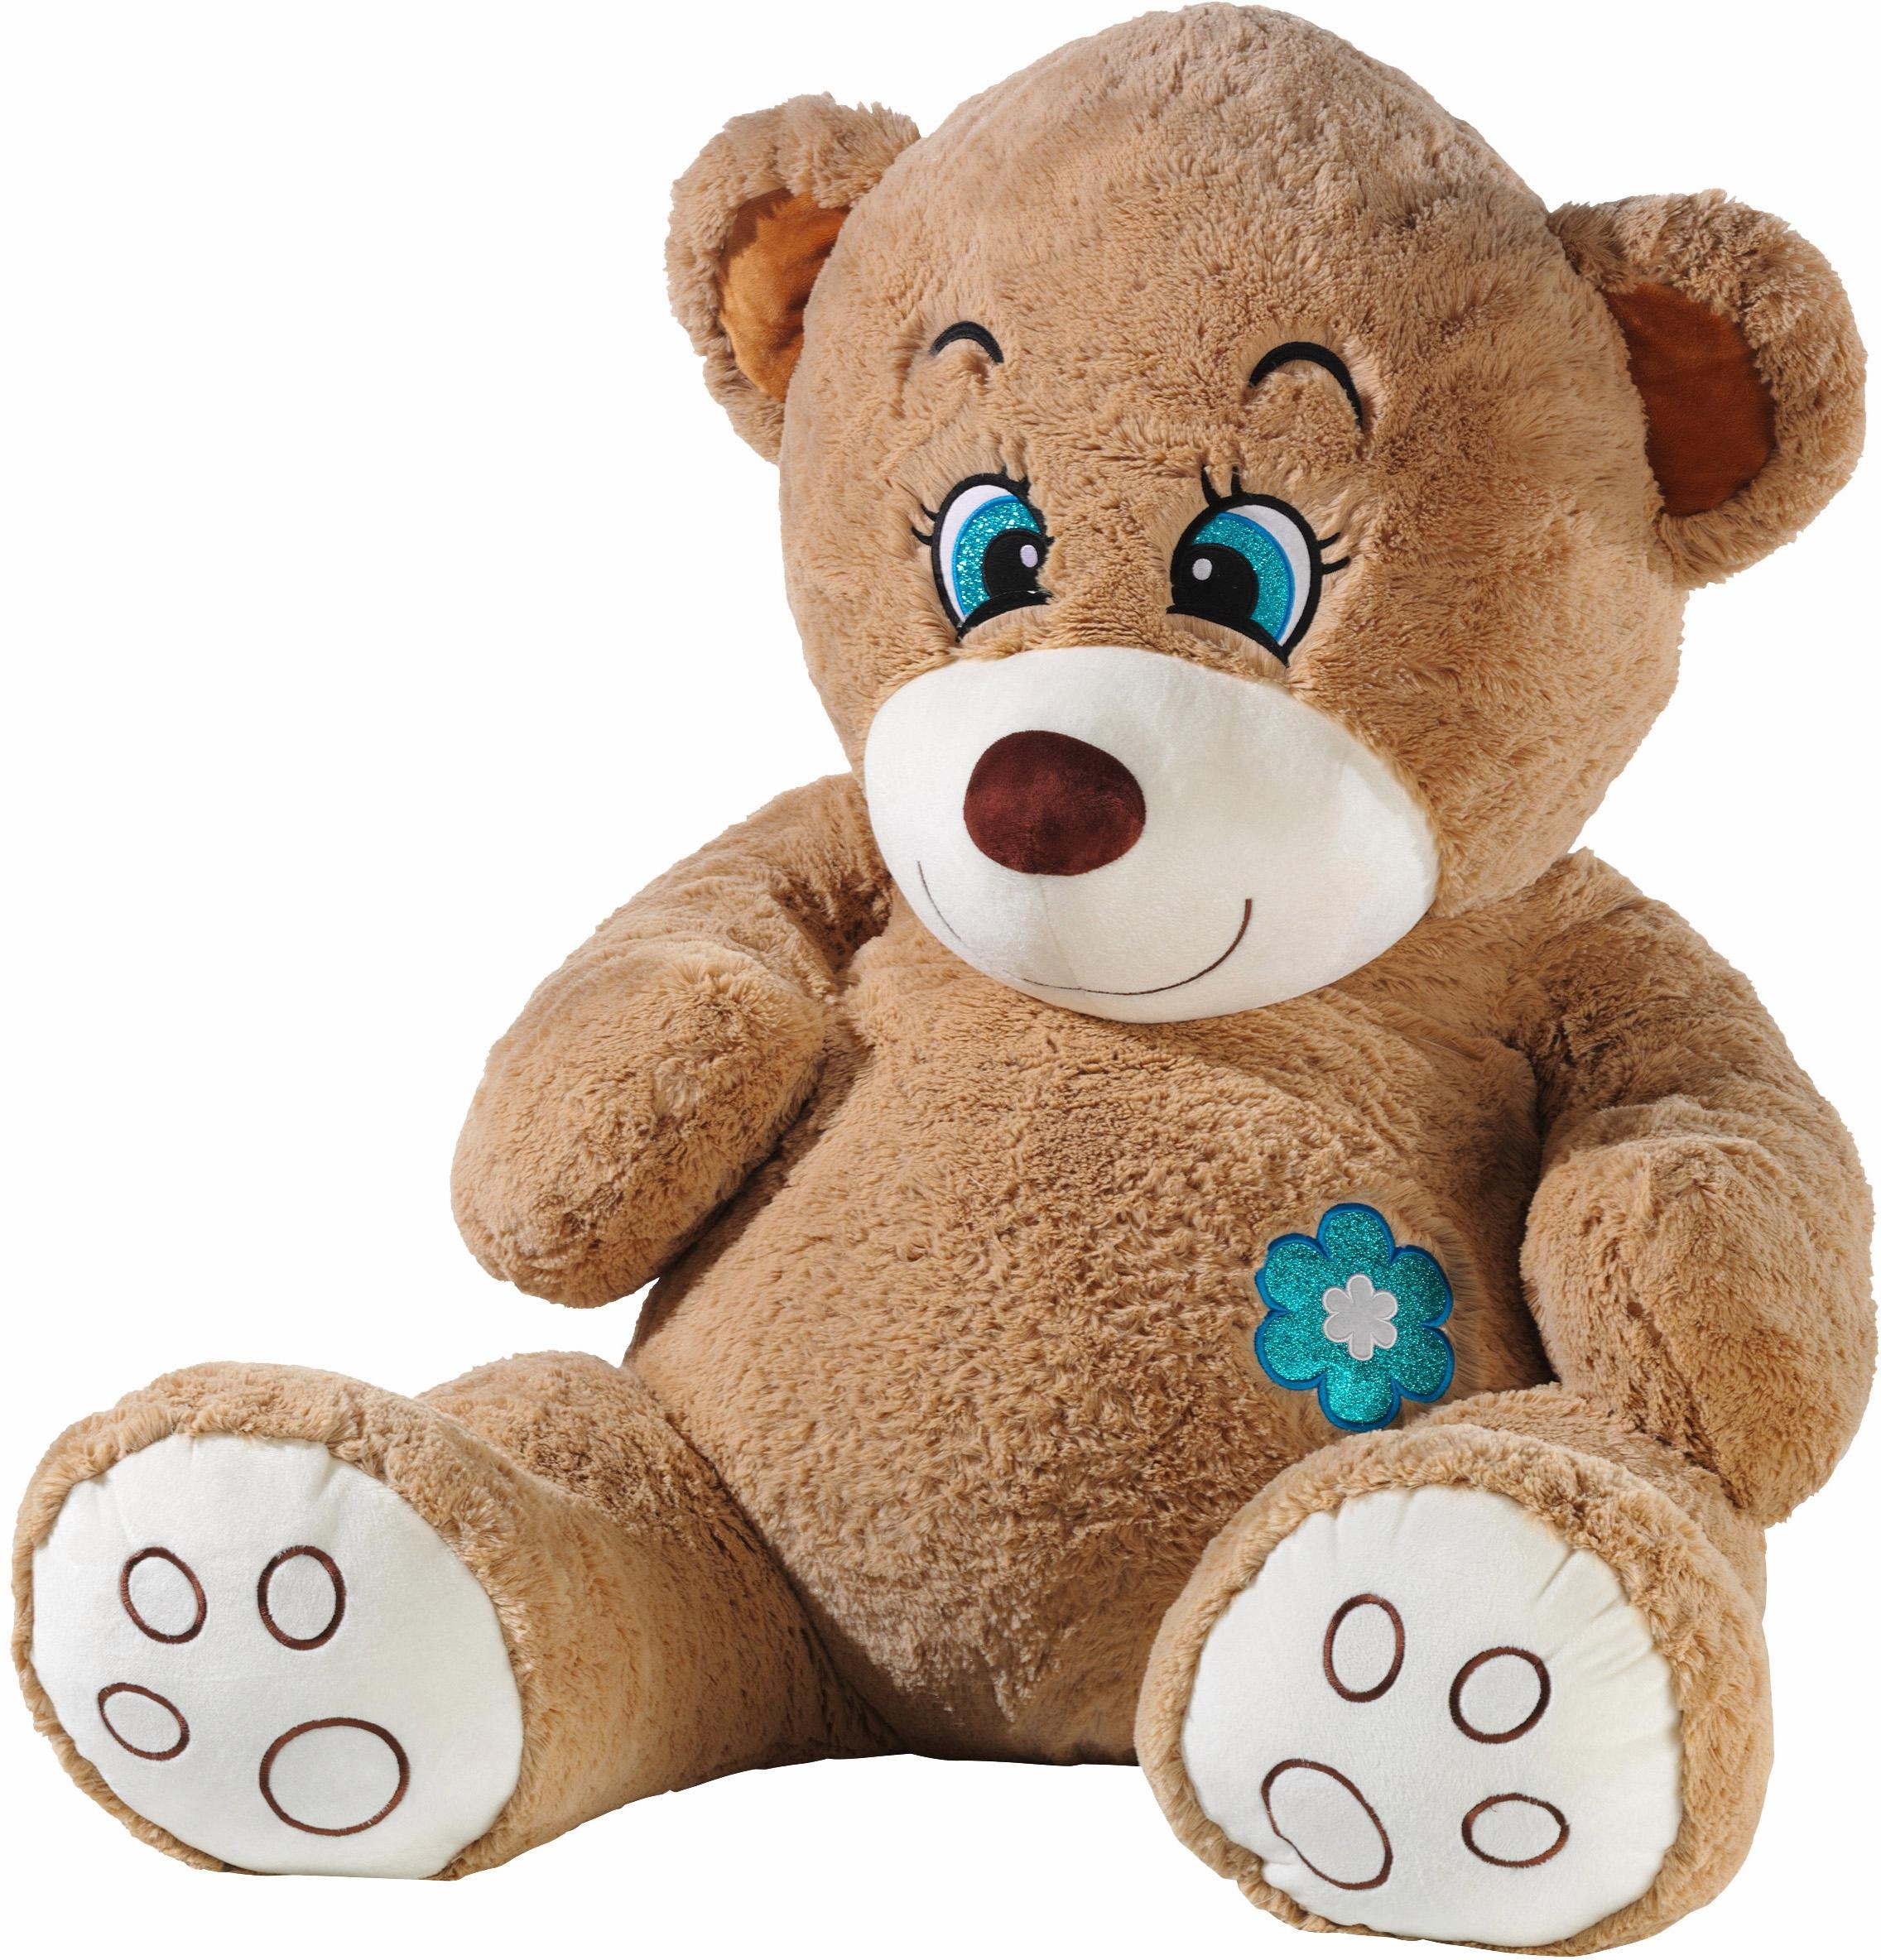 power peluche Acquista Teddy Xxl« teddy»flower glitter Heunec A5L4jR